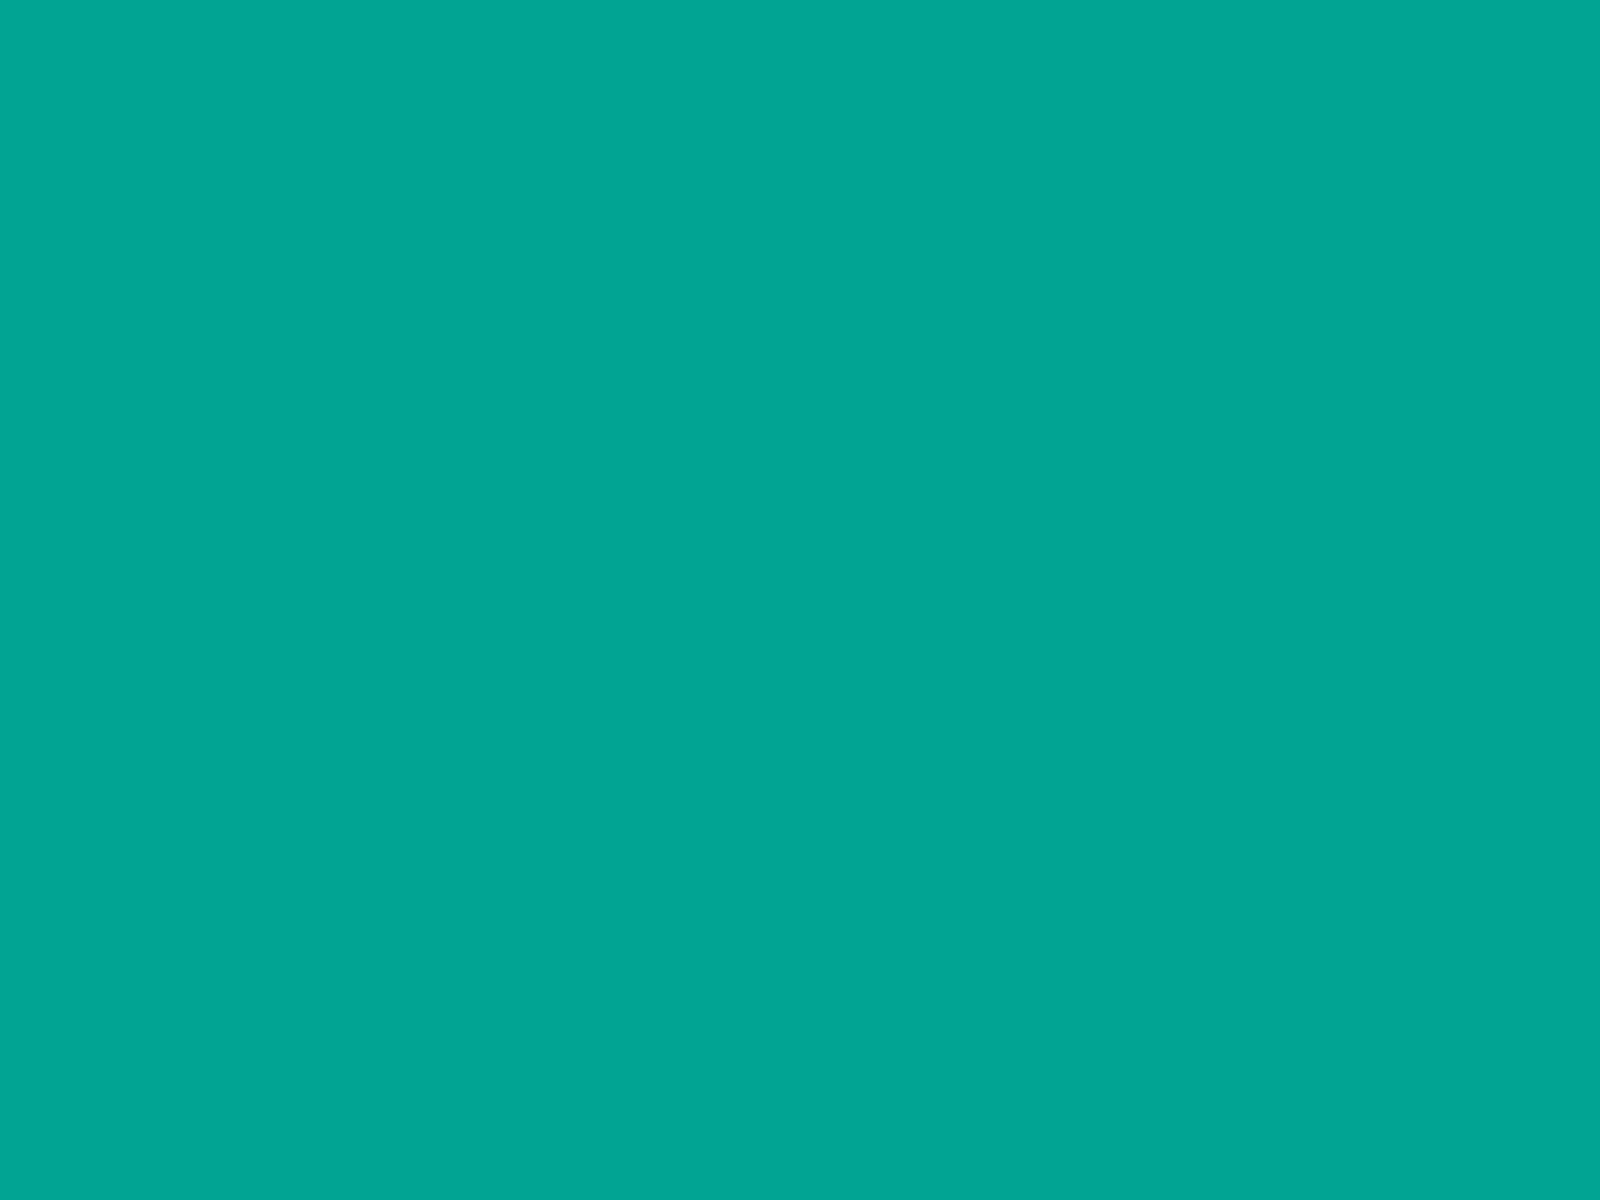 1600x1200 Persian Green Solid Color Background